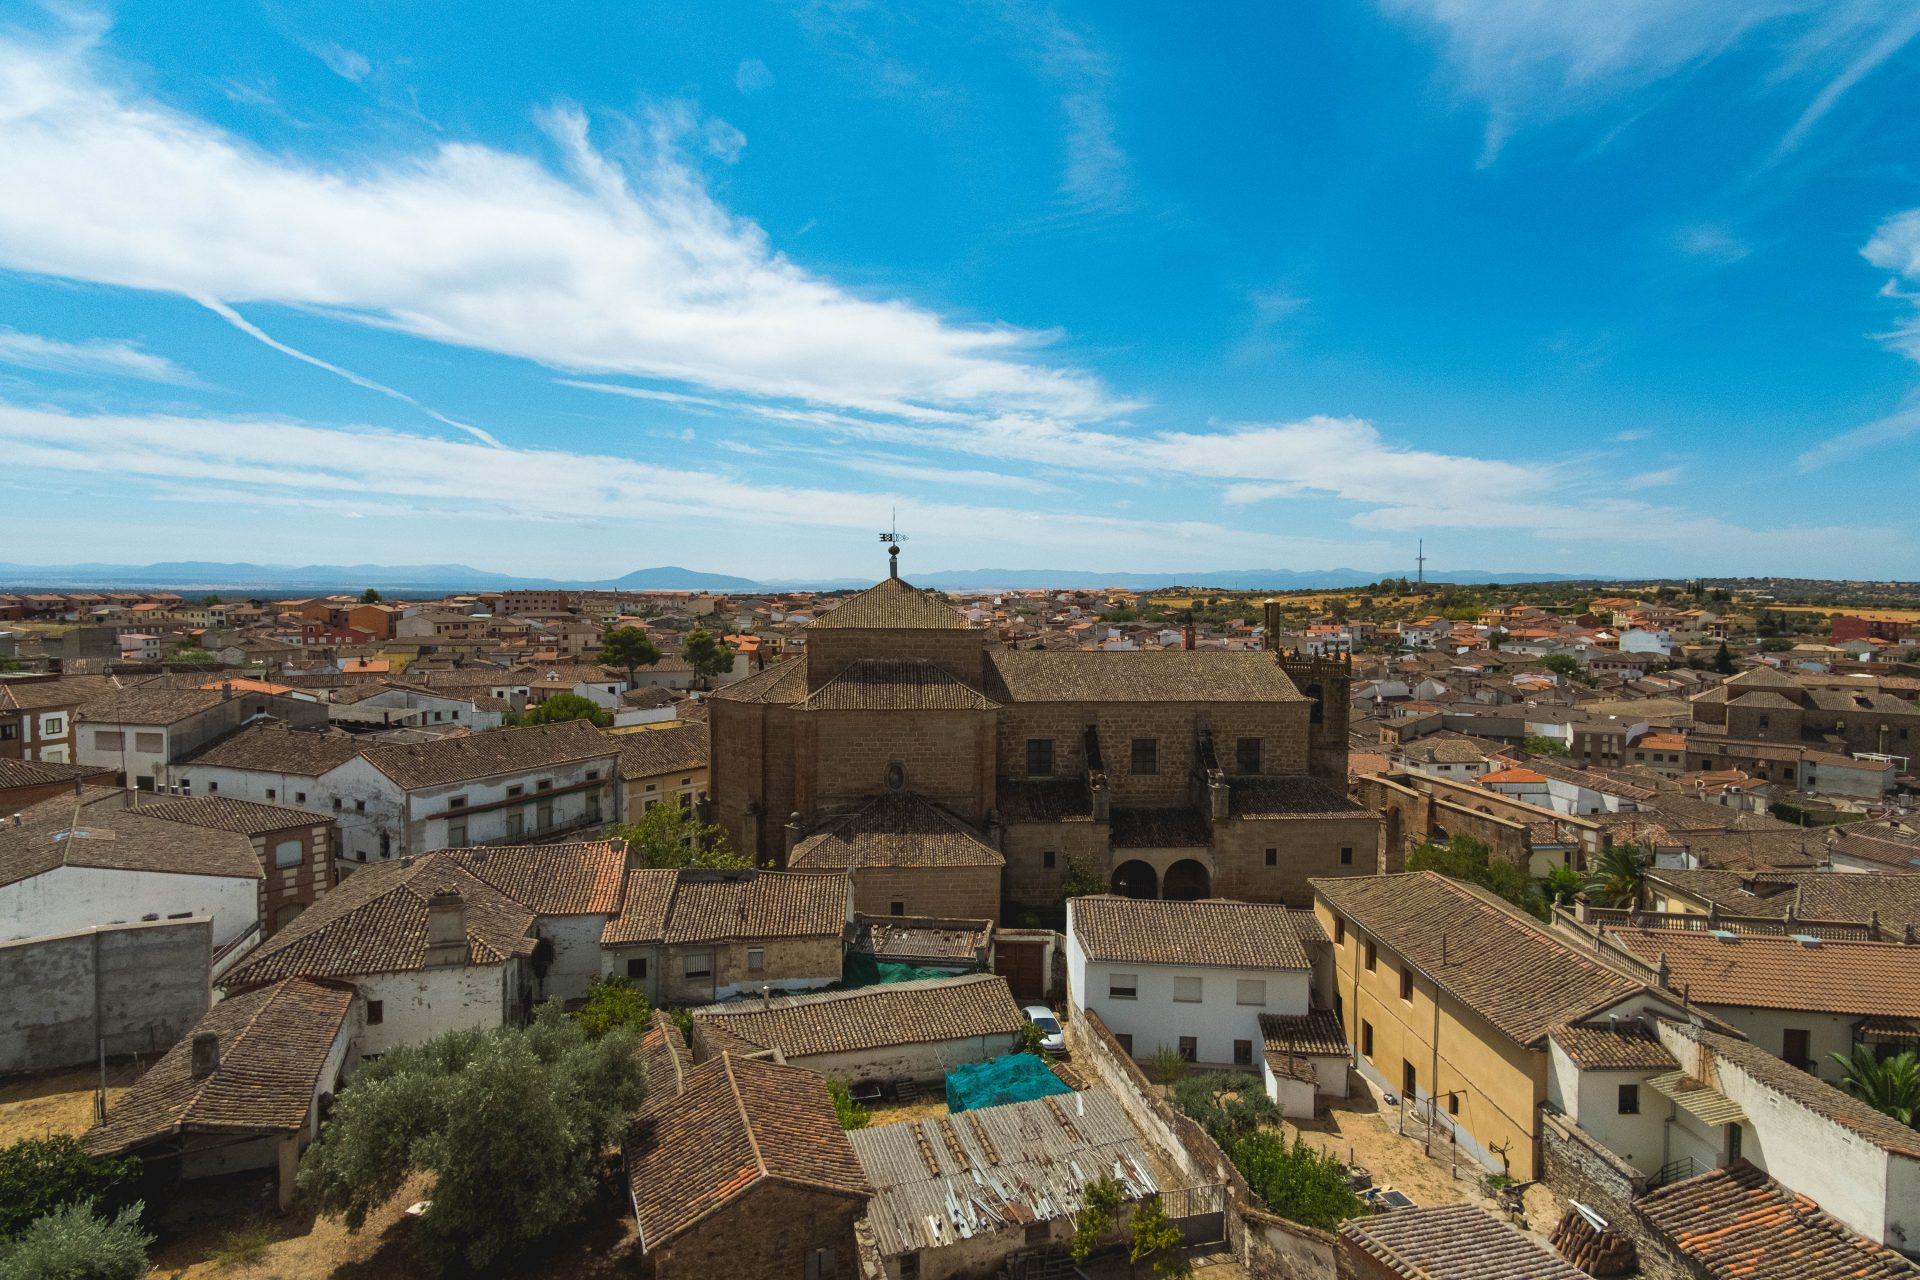 Panoramic view of the village of Oropesa photo by Jo Kassis